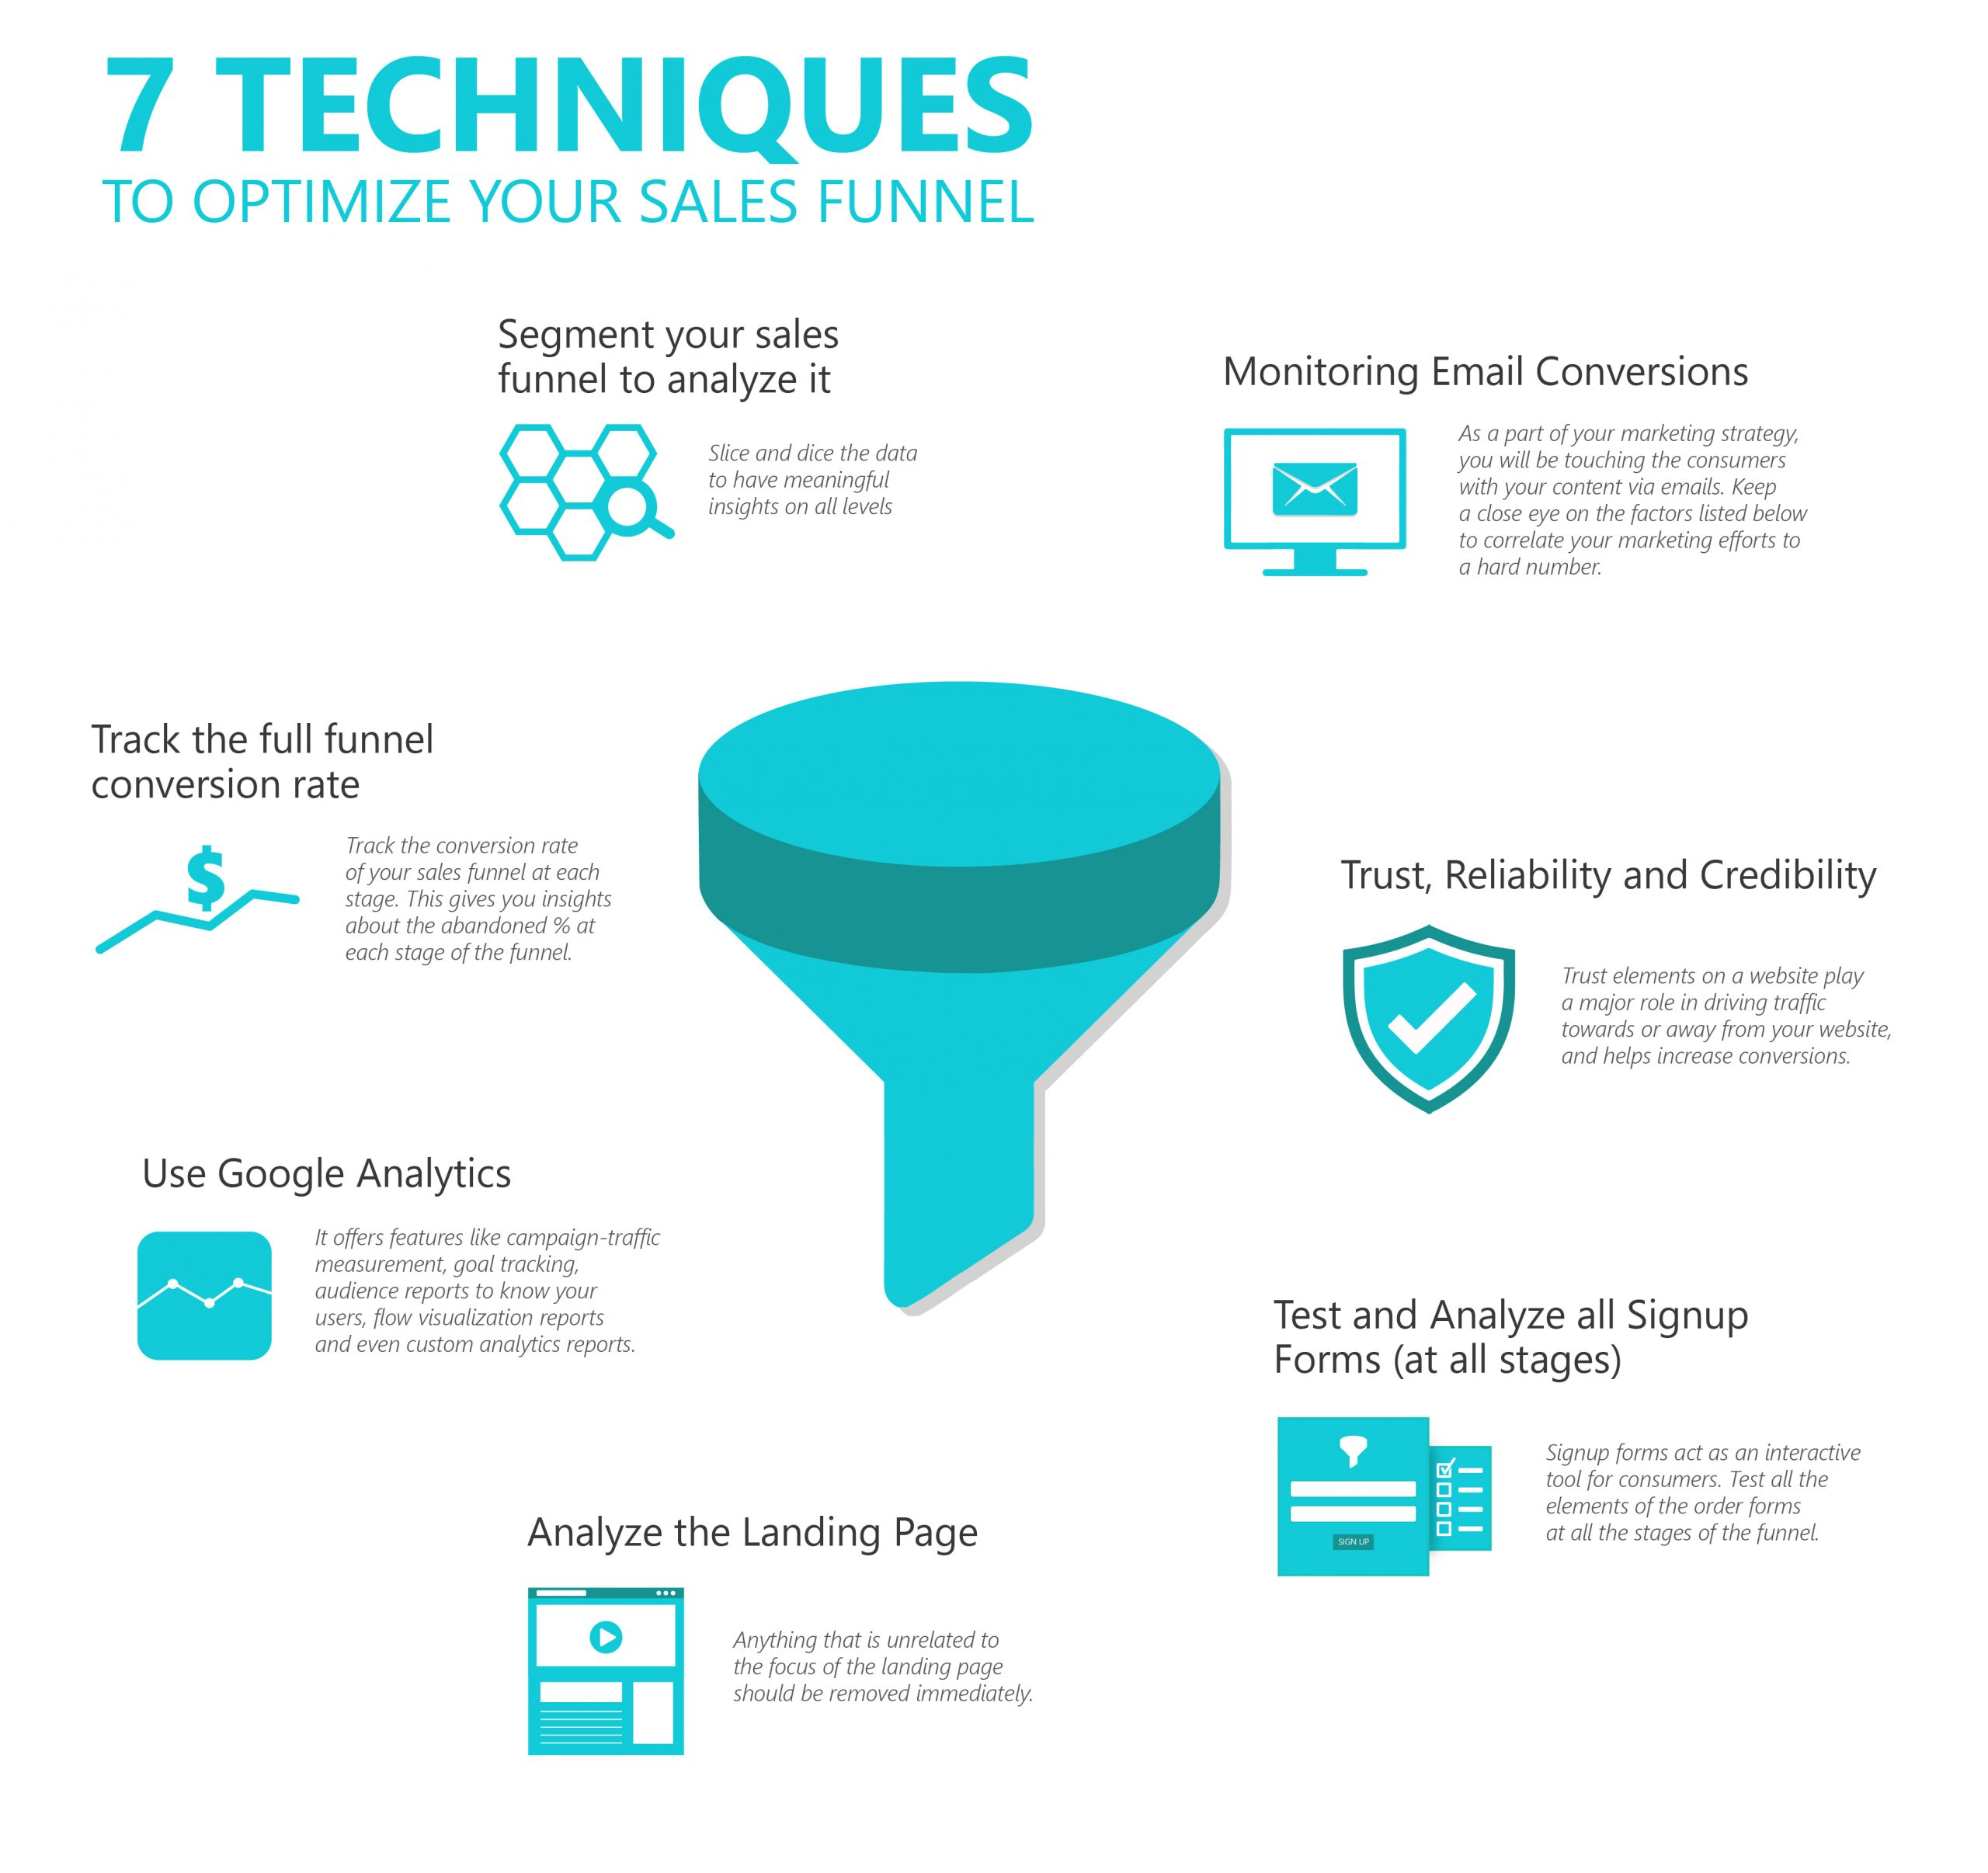 7 techniques to build your sales funnel [infographic]